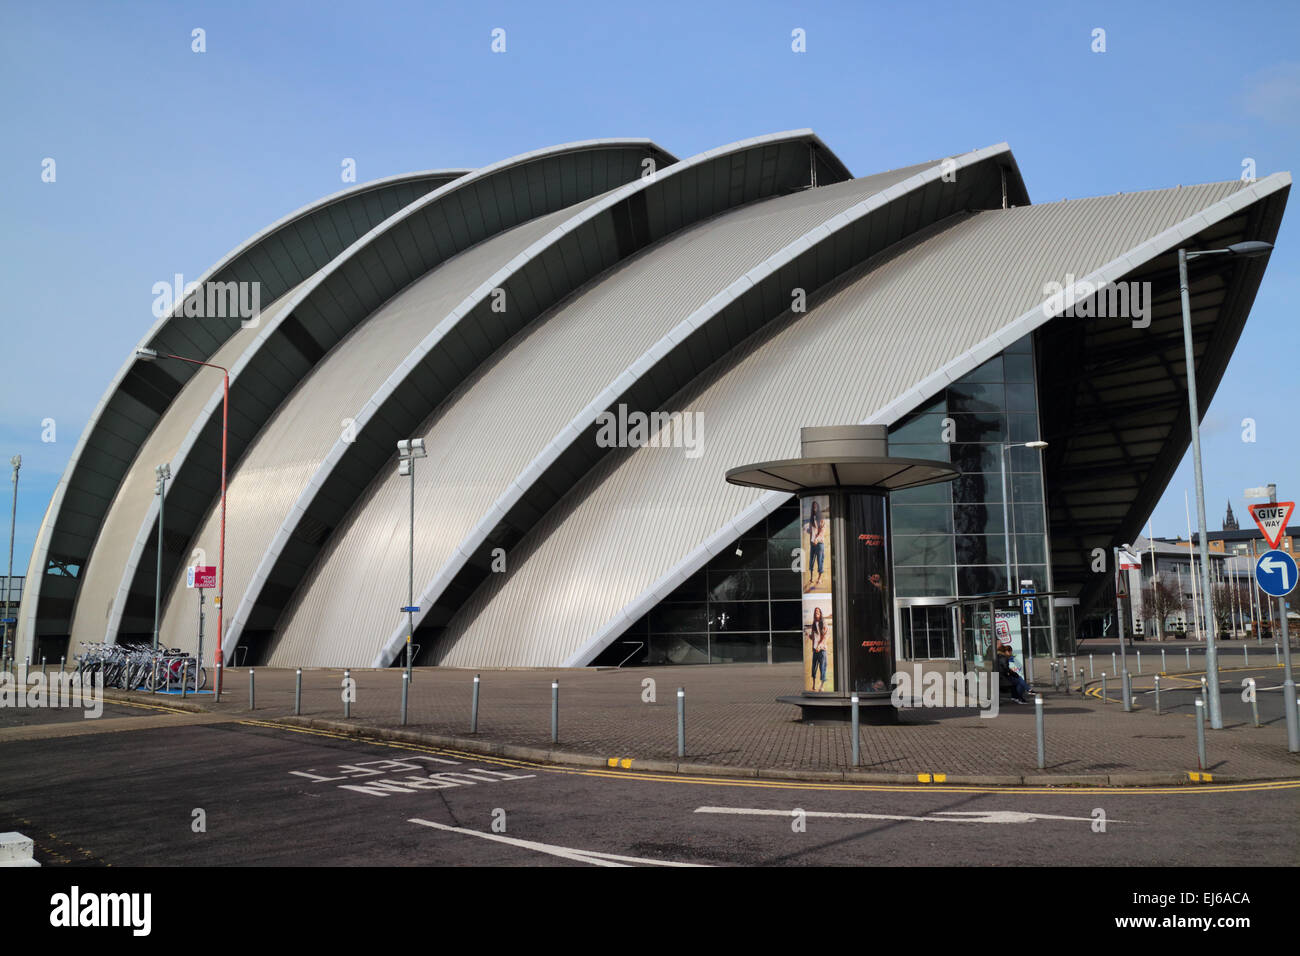 clyde auditorium at the secc scottish exhibition and conference centre Glasgow Scotland uk - Stock Image